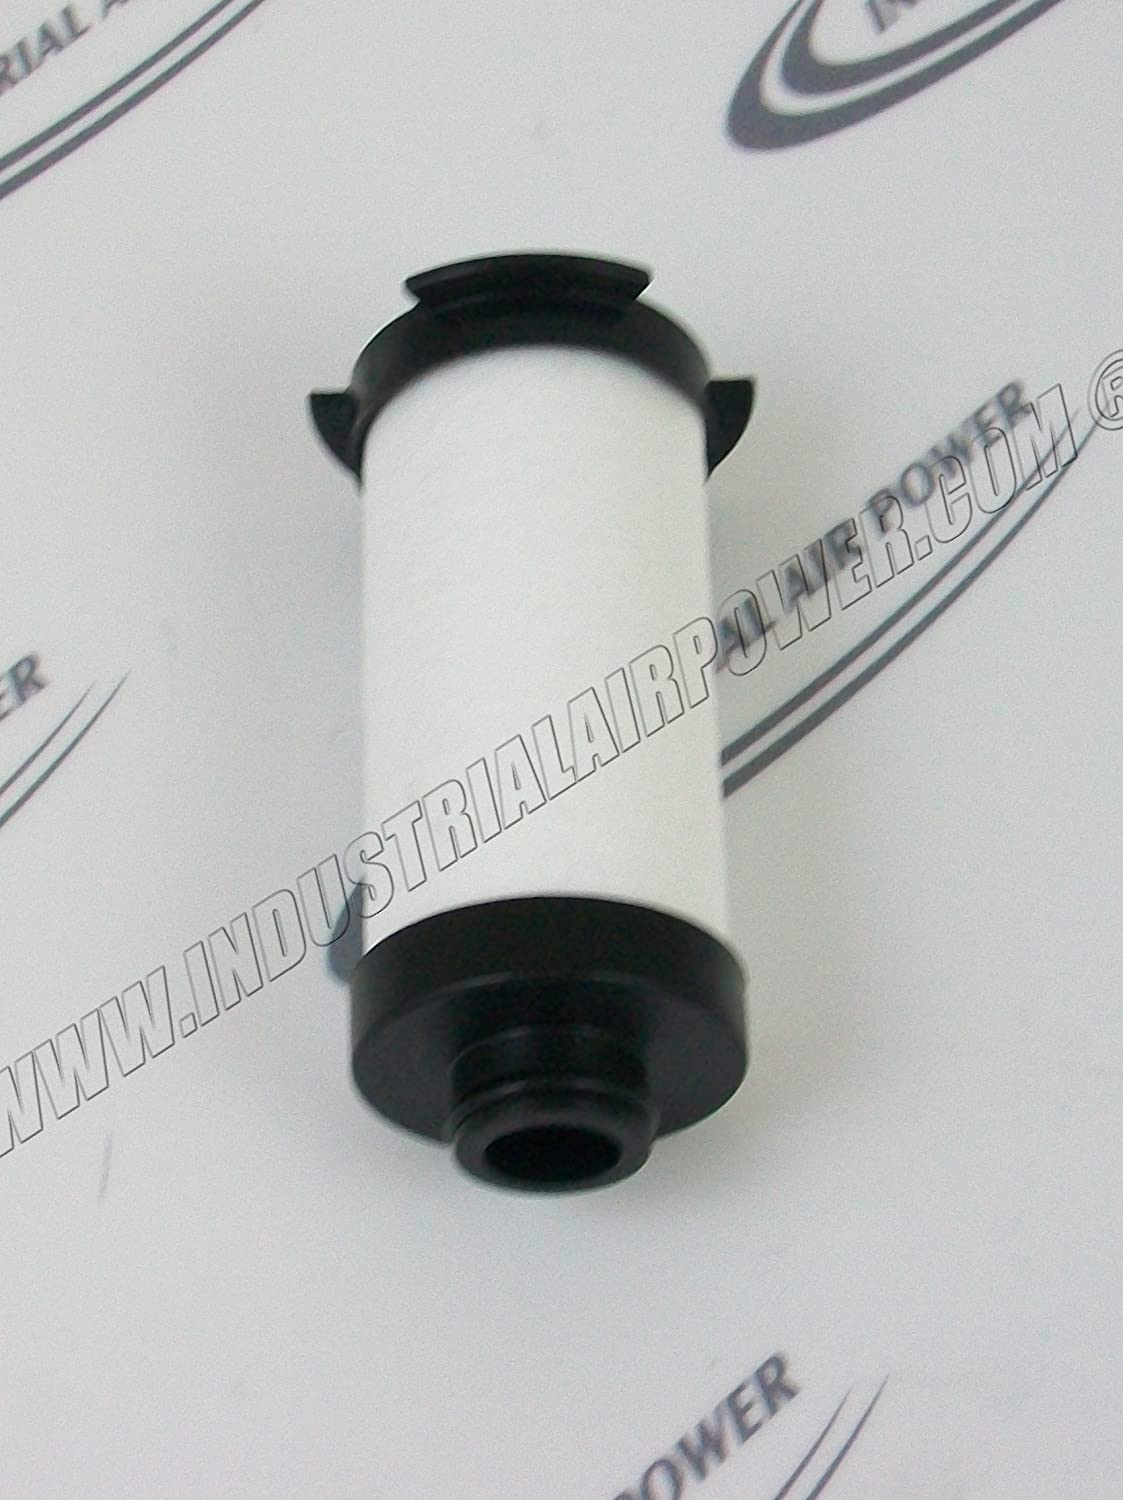 CPNE00030 30 Pol Coals Filter Element Designed for use with Quincy Compressors